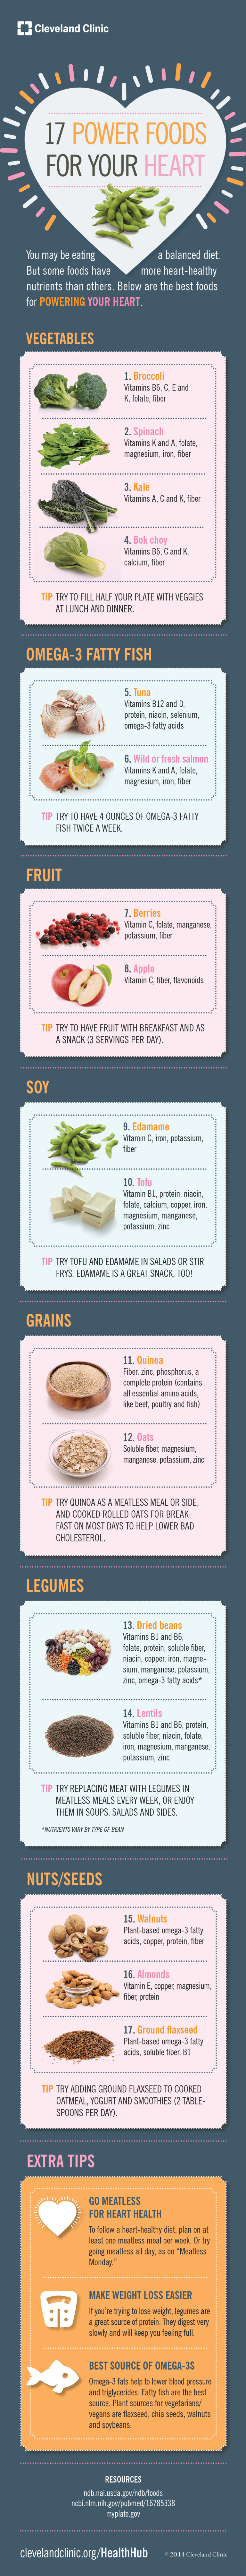 foods for your heart